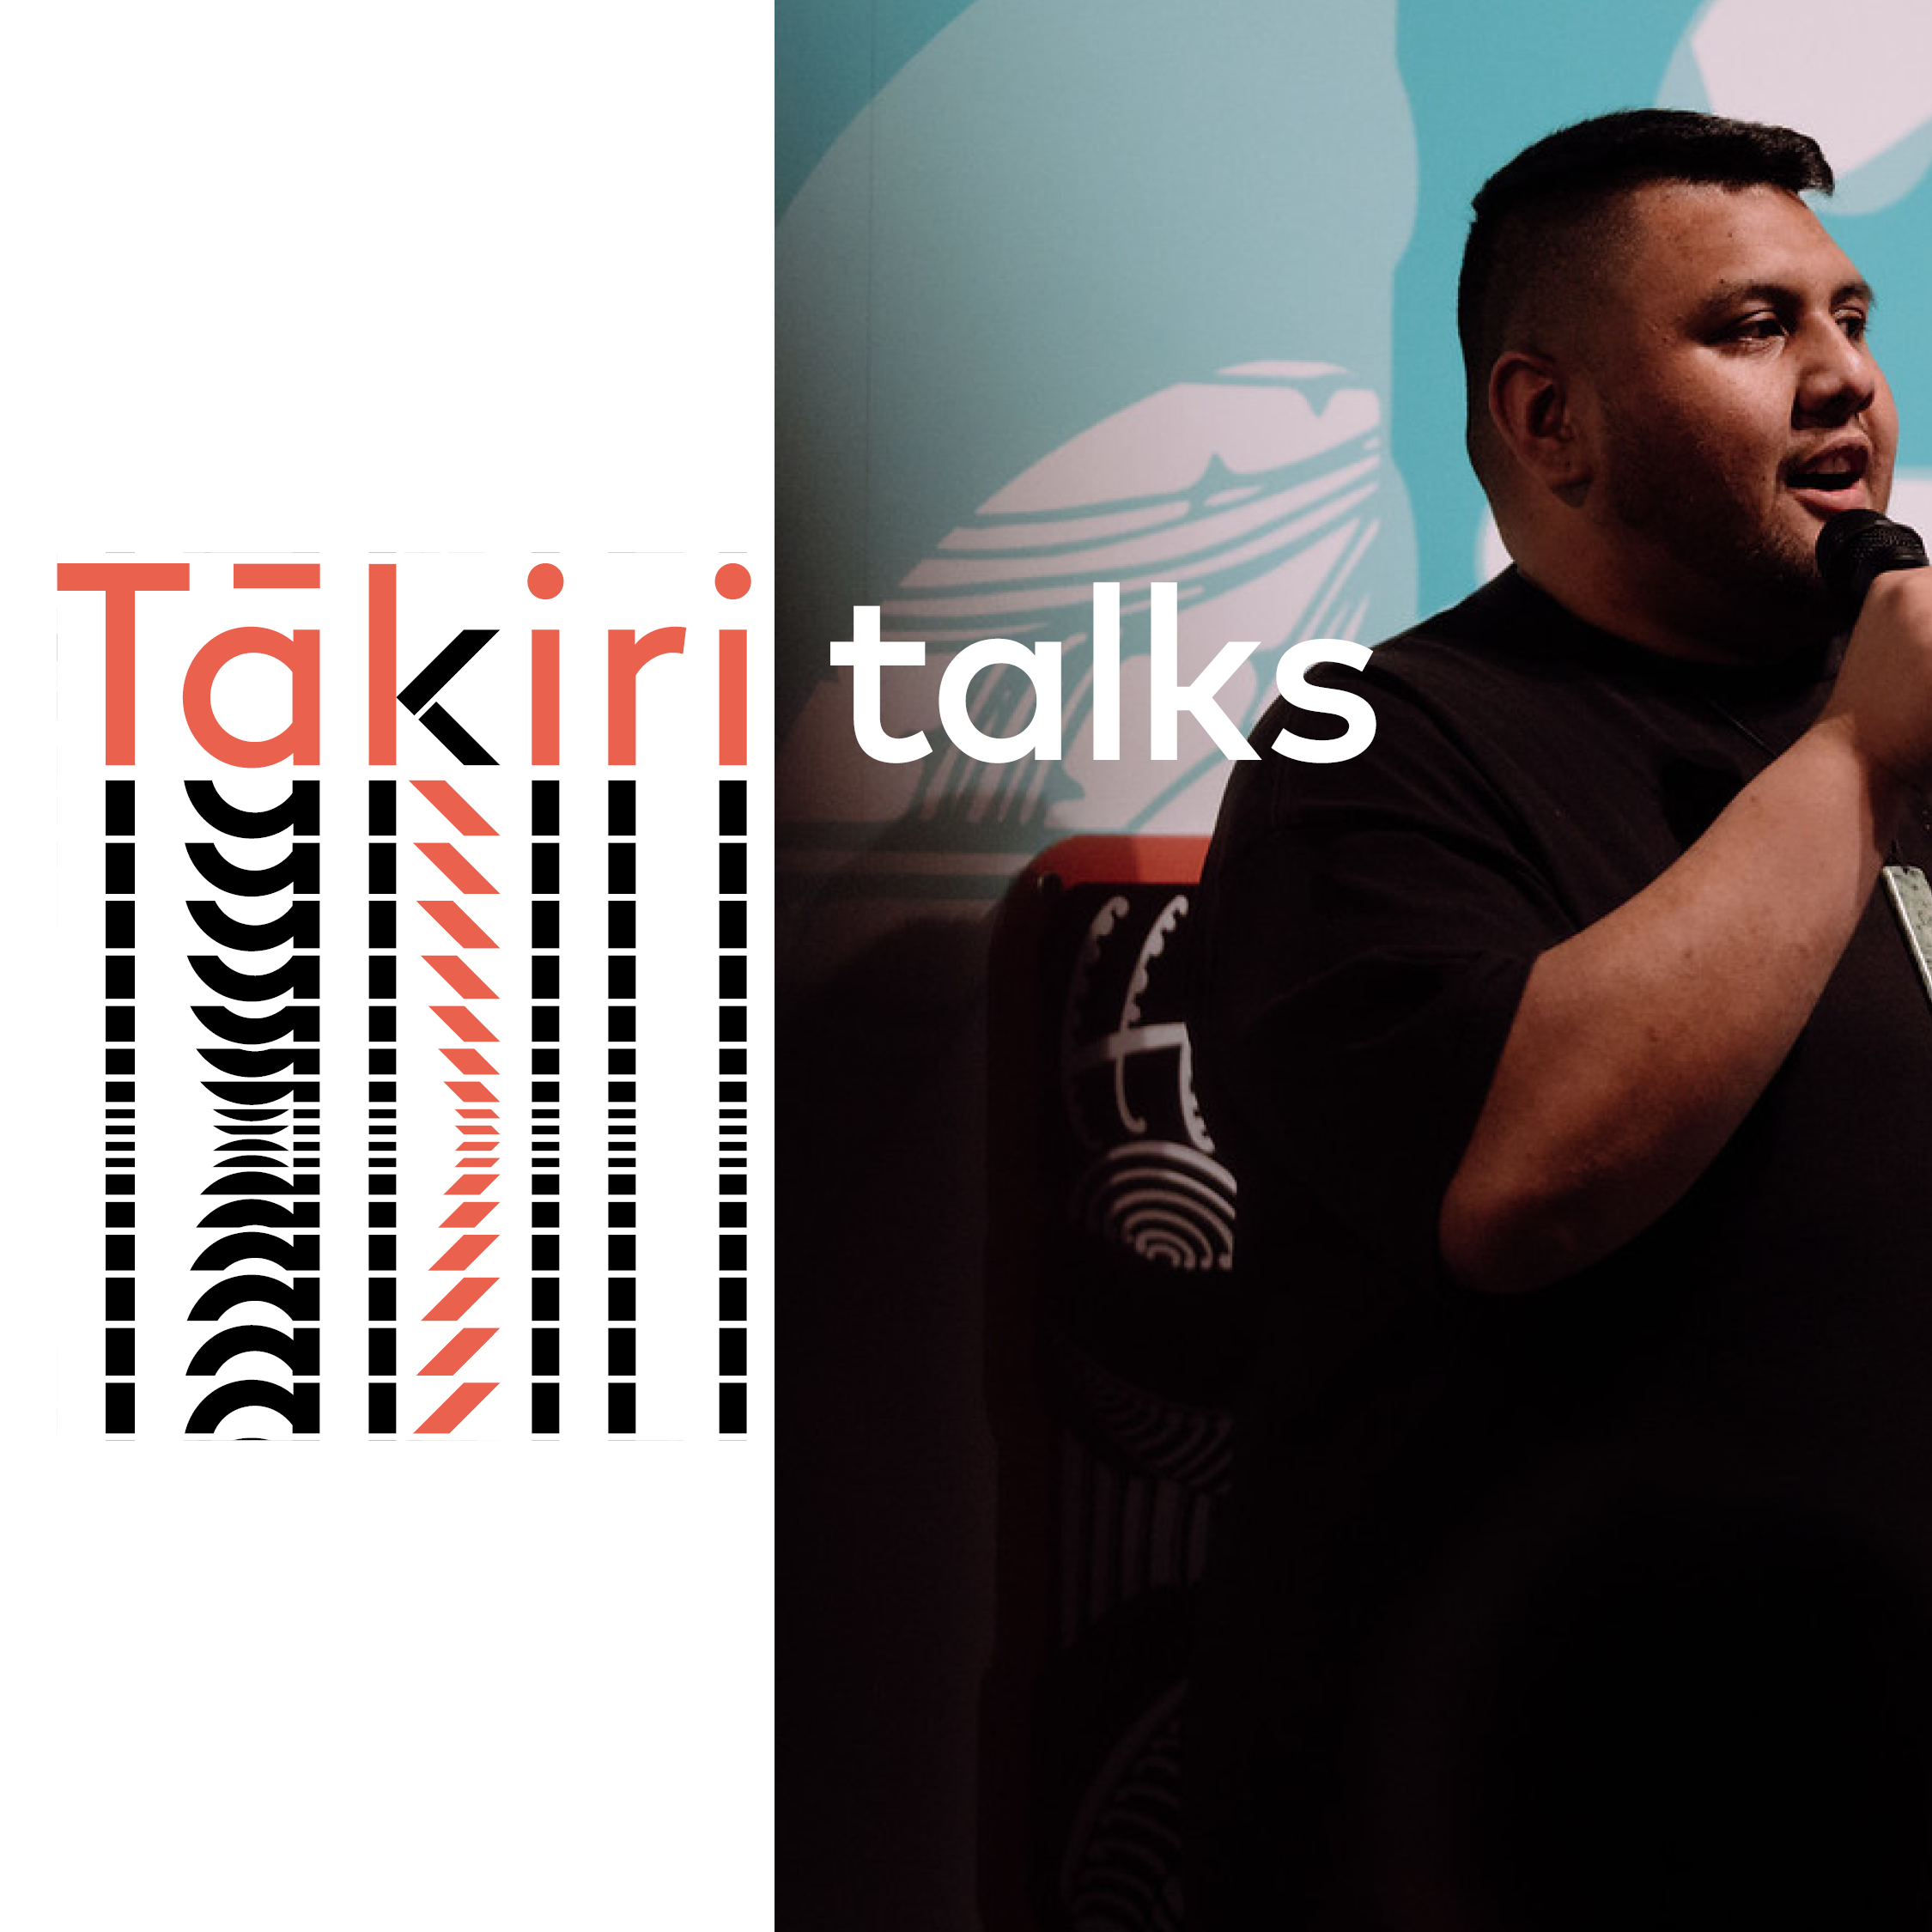 https://rfacdn.nz/maritime/assets/media/takiri-talks-whakarongo-mai-thumbnail.png